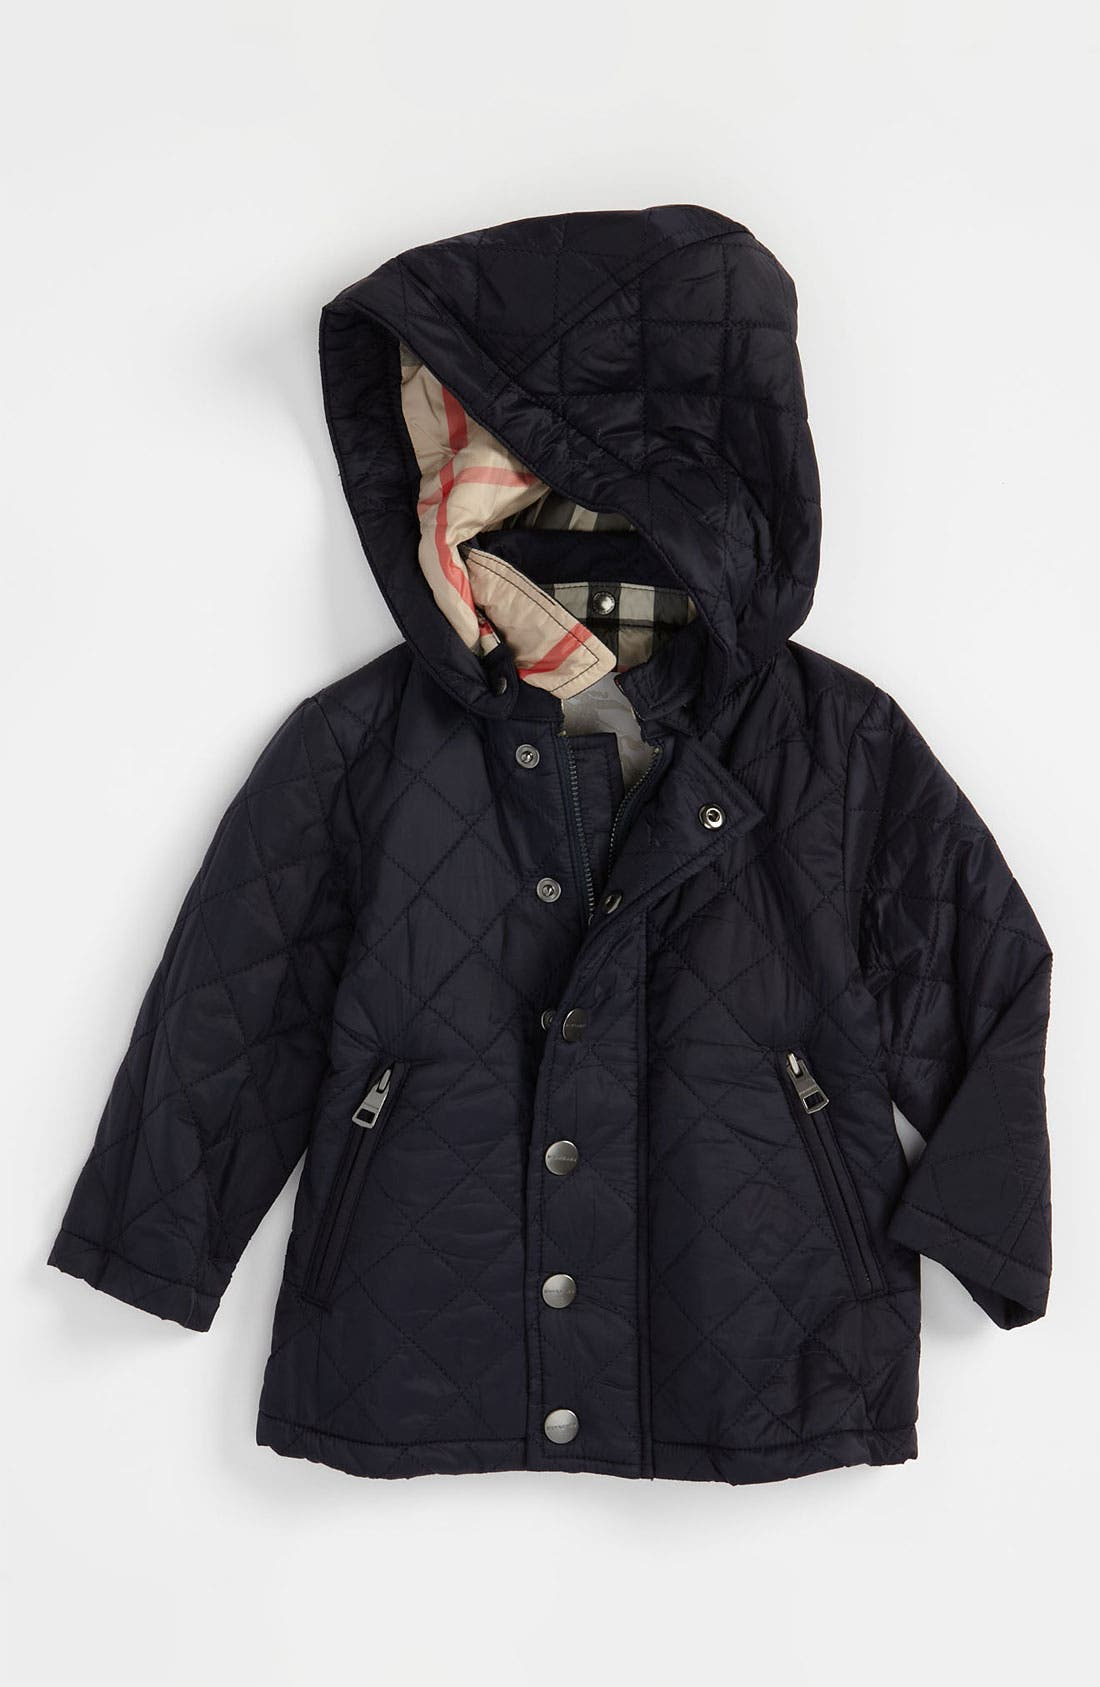 Main Image - Burberry Quilted Jacket (Baby)